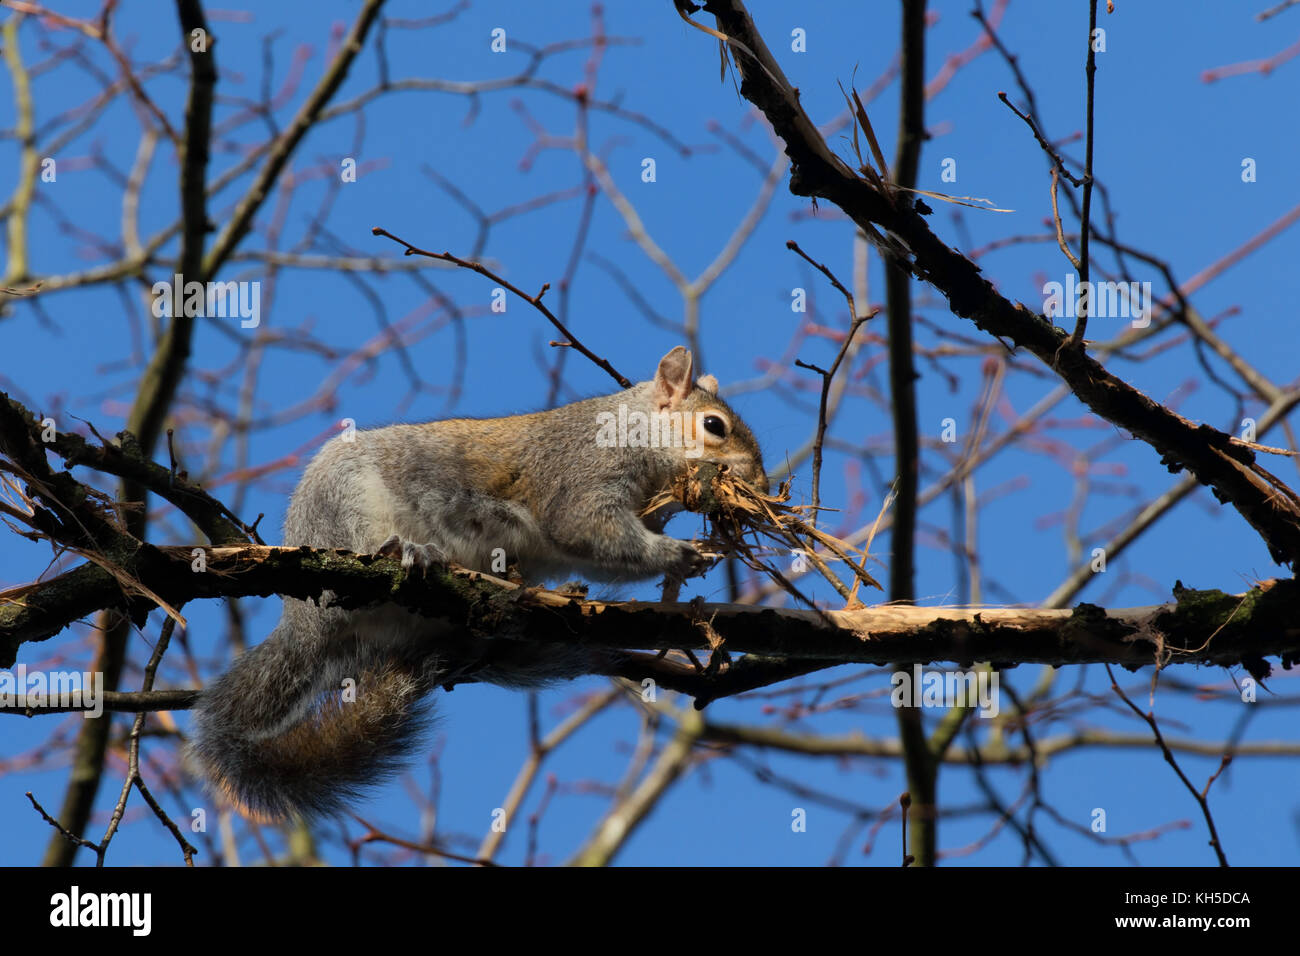 Grey Squirrels Uk Stock Photos & Grey Squirrels Uk Stock Images - Alamy